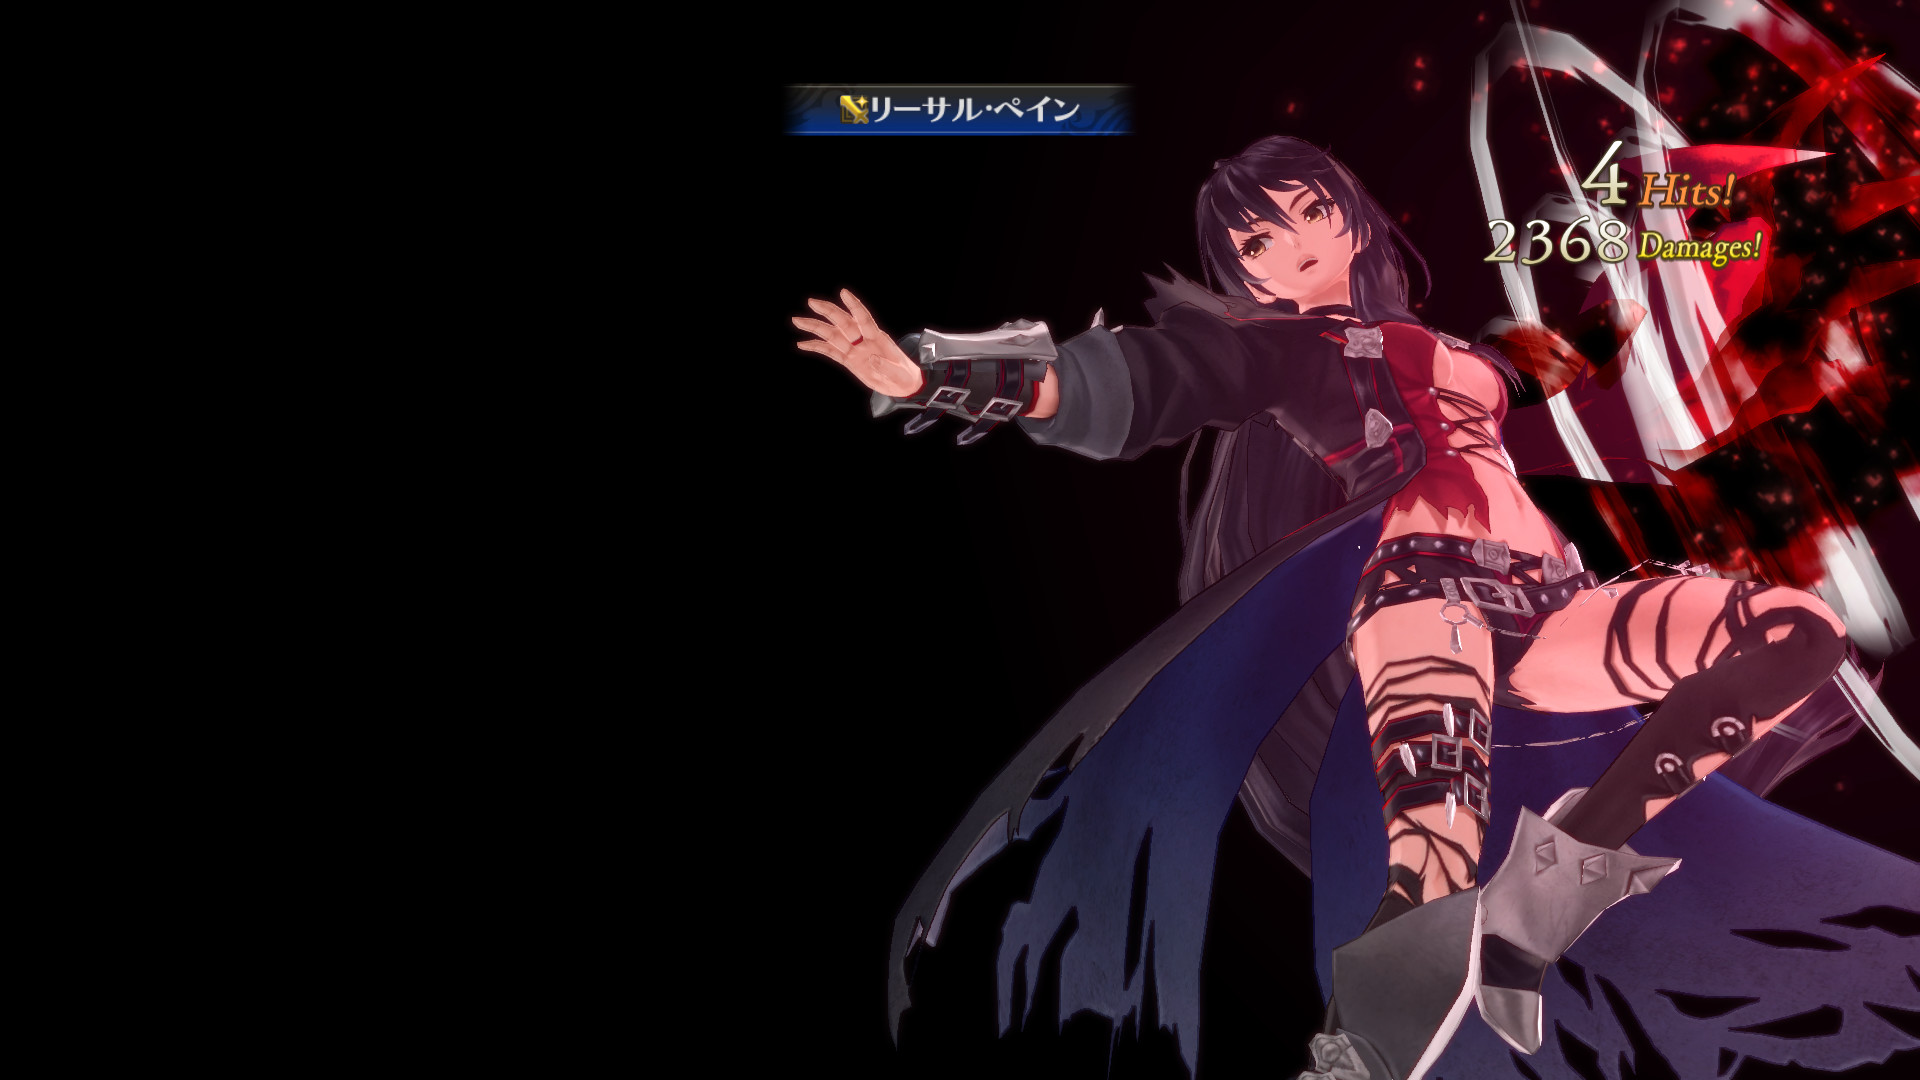 tales of berseria costumes download